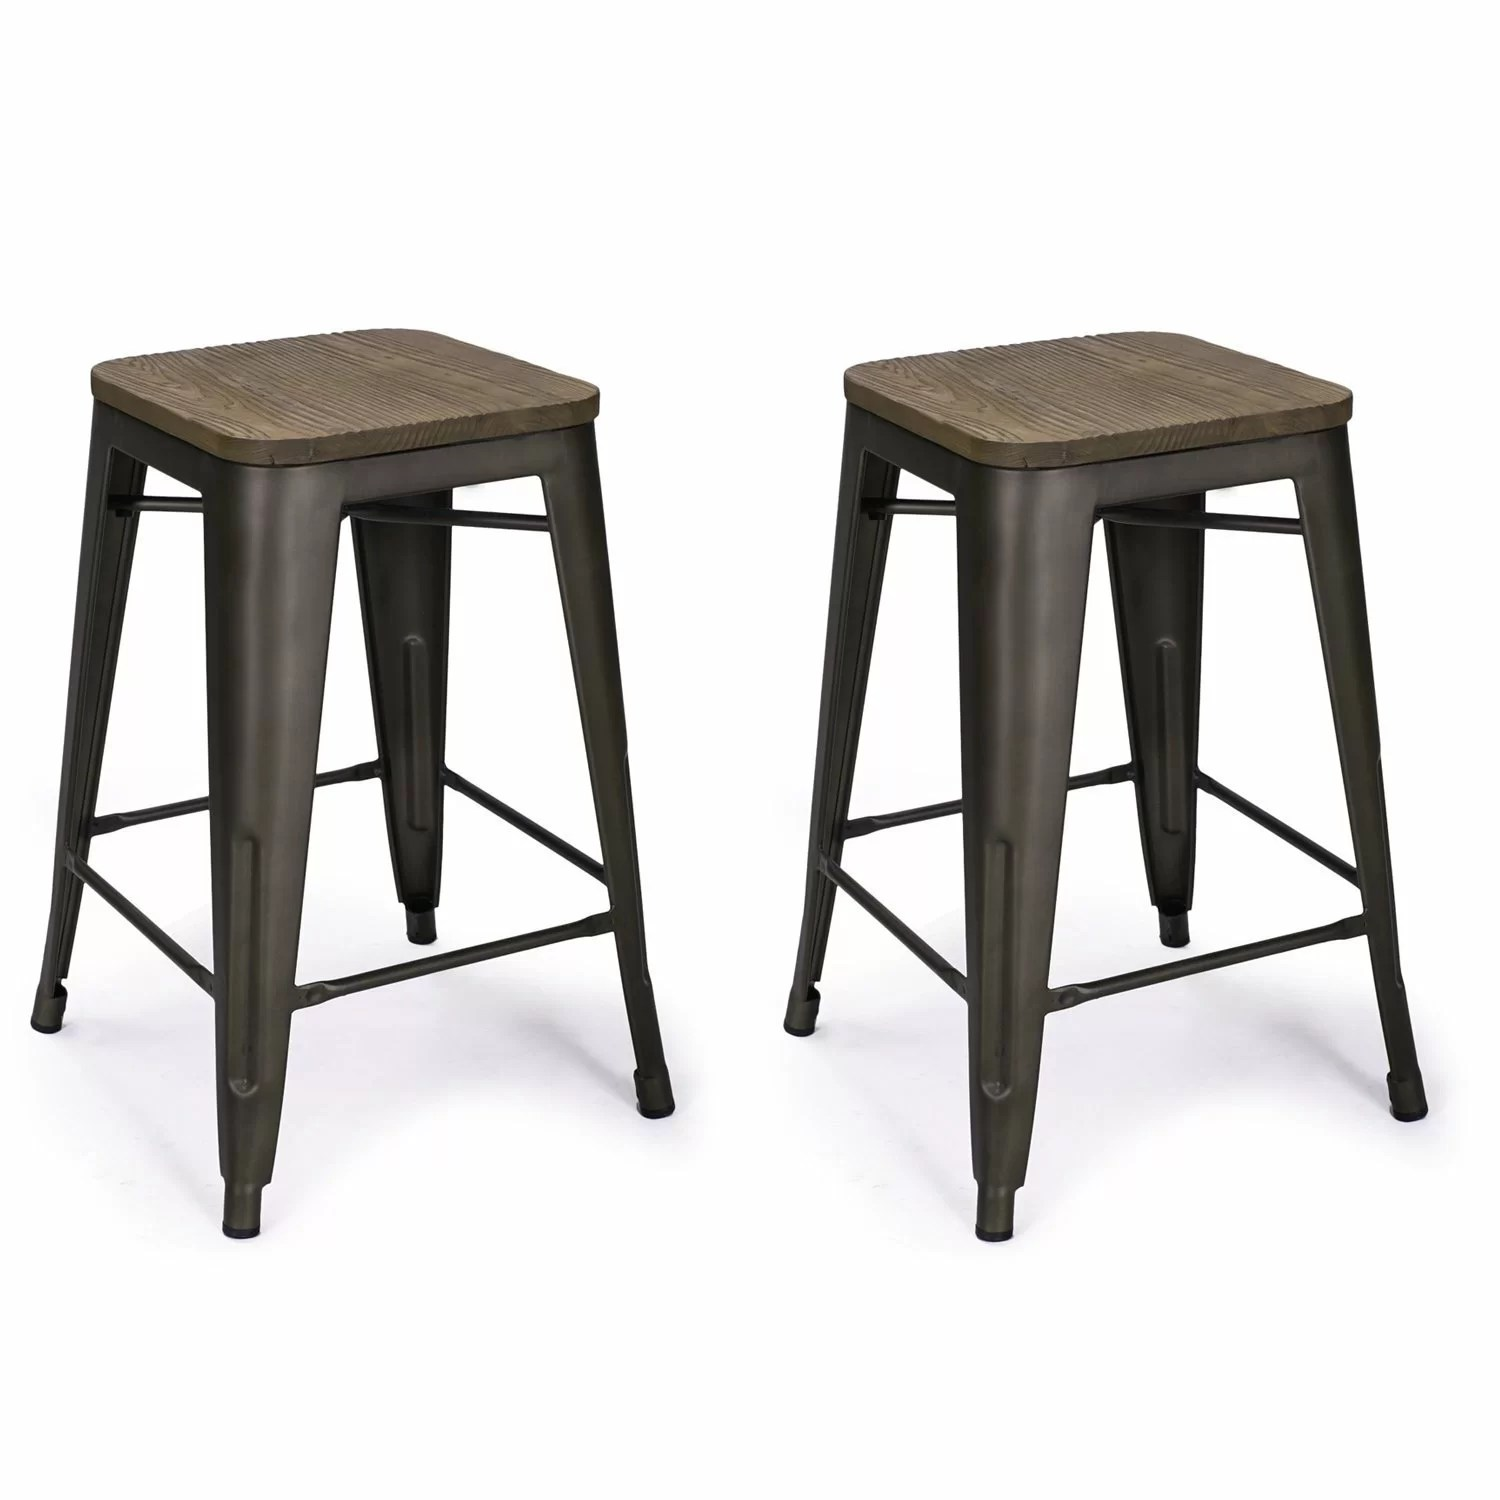 Bar Chair Adecotrading 24 Quot Bar Stool And Reviews Wayfair